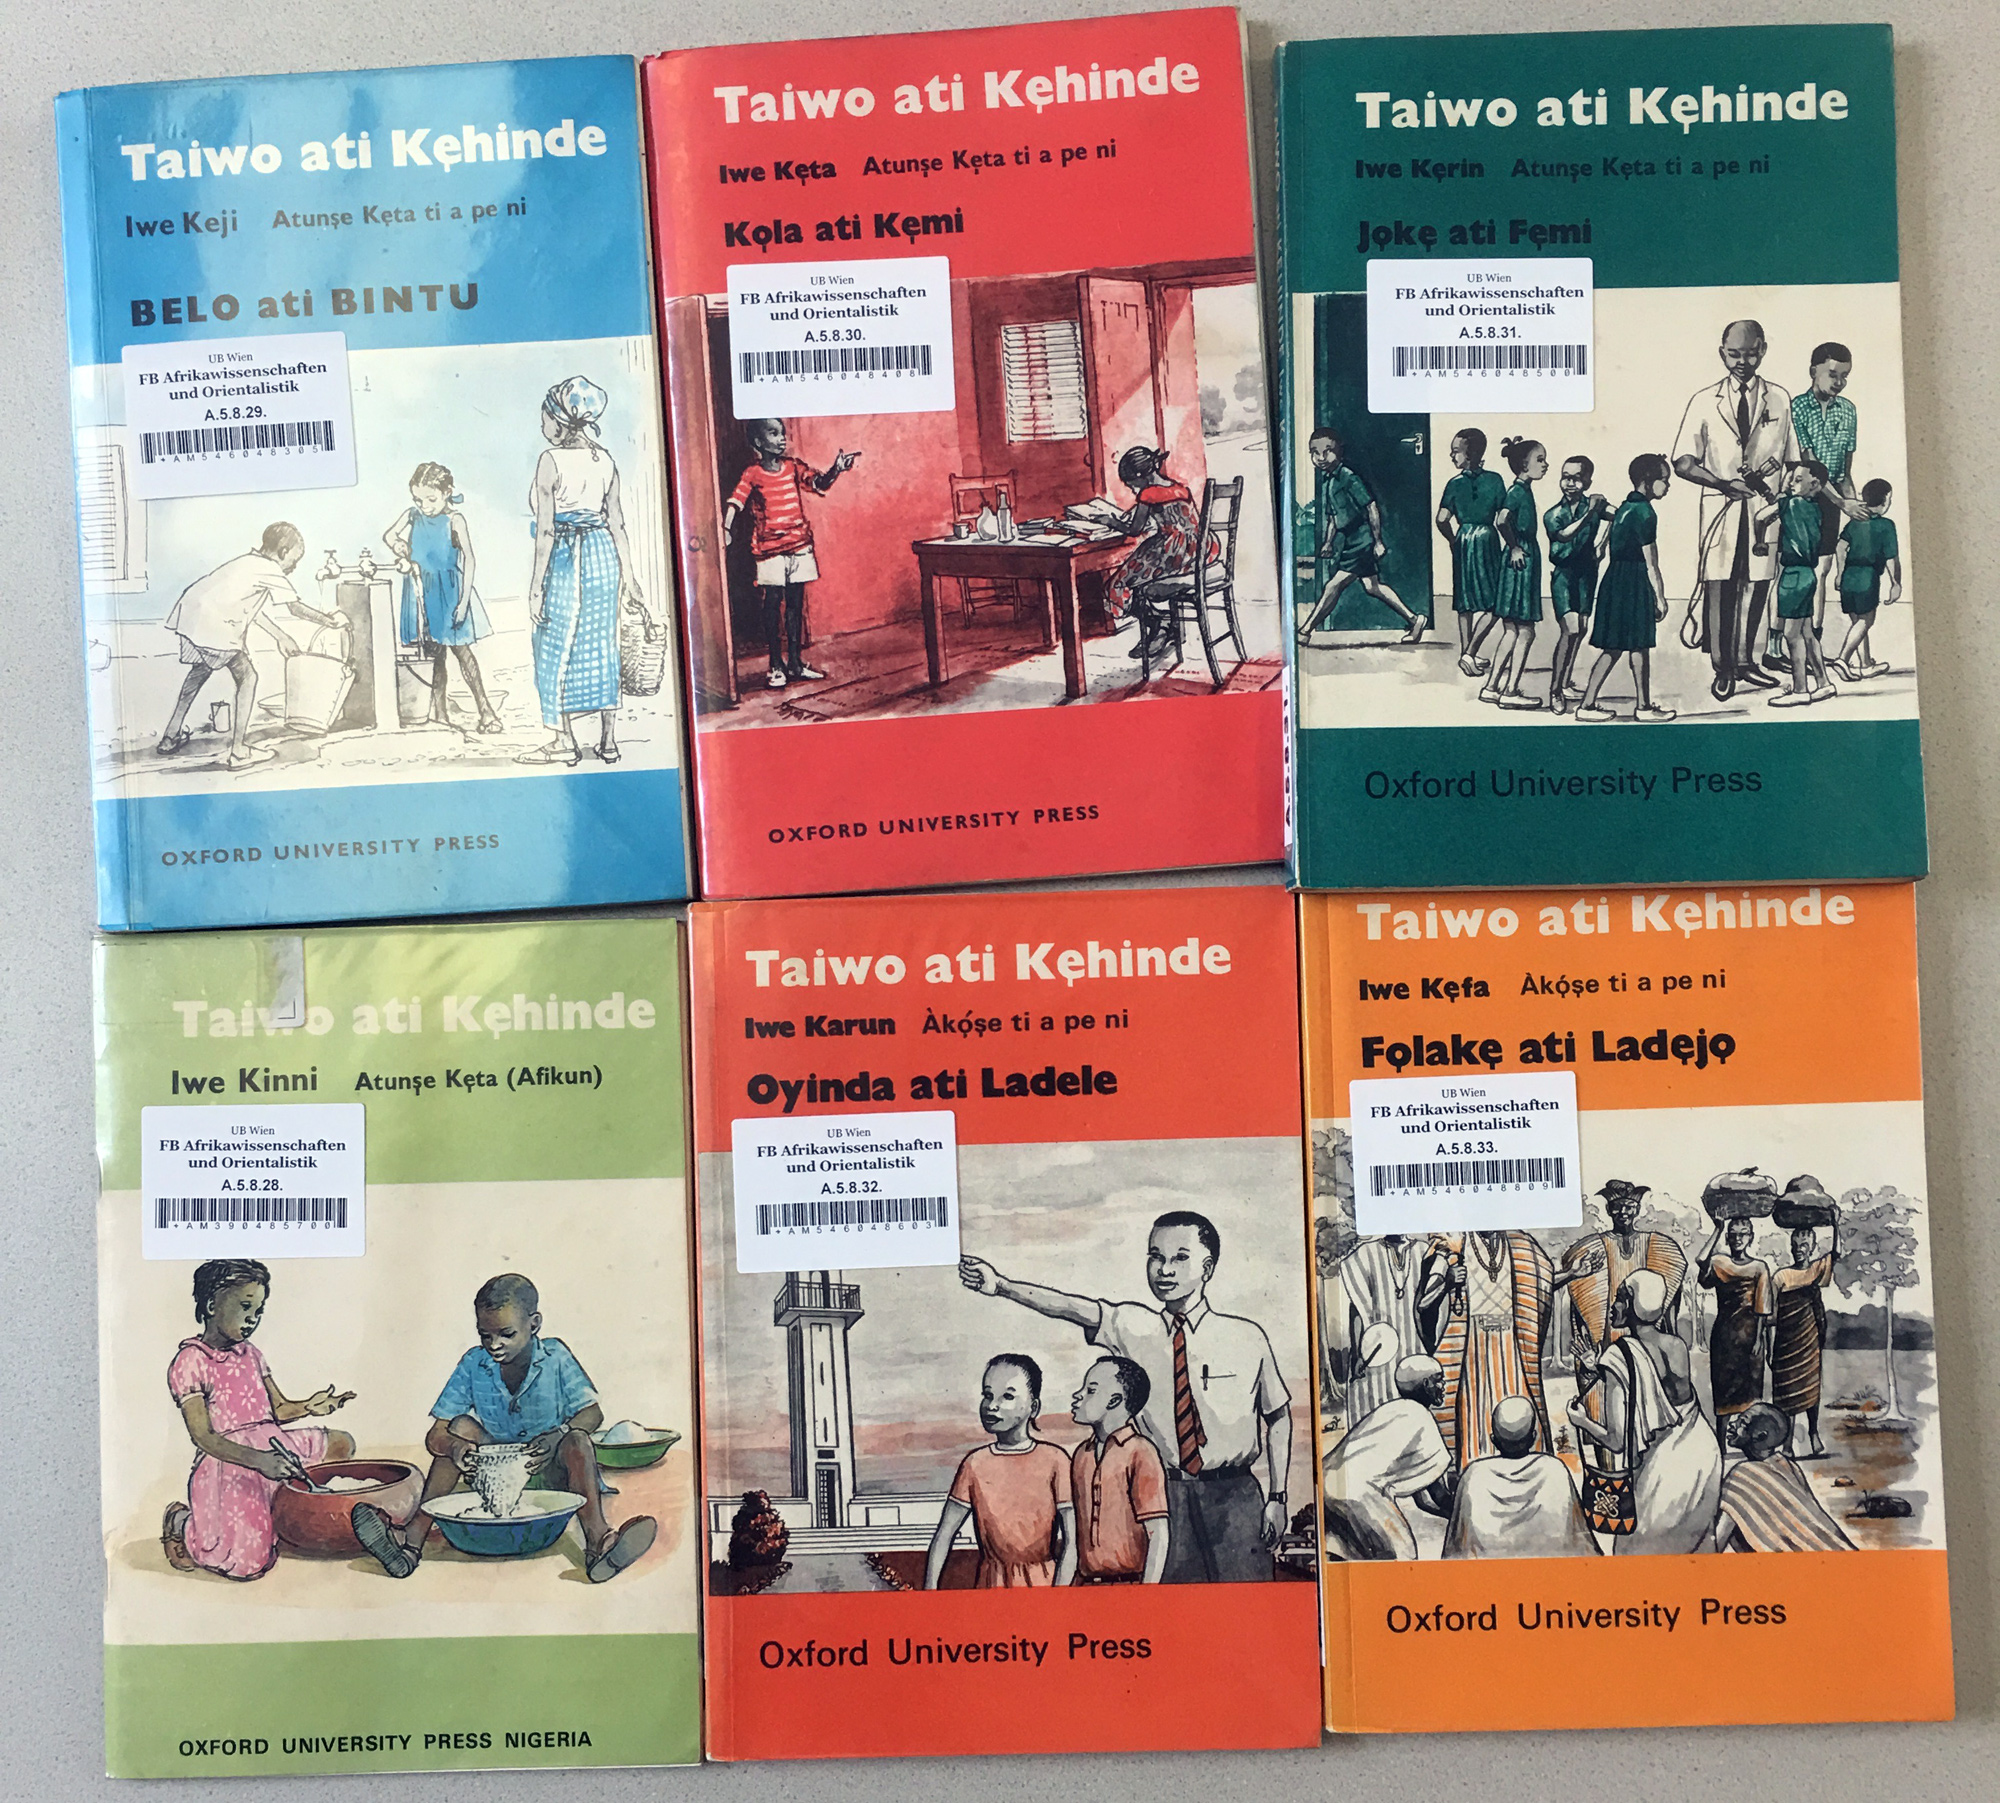 Taiwo ati Kehinde, educational Yorùbá language books for children, are available in re-editions today.©Orisha Image